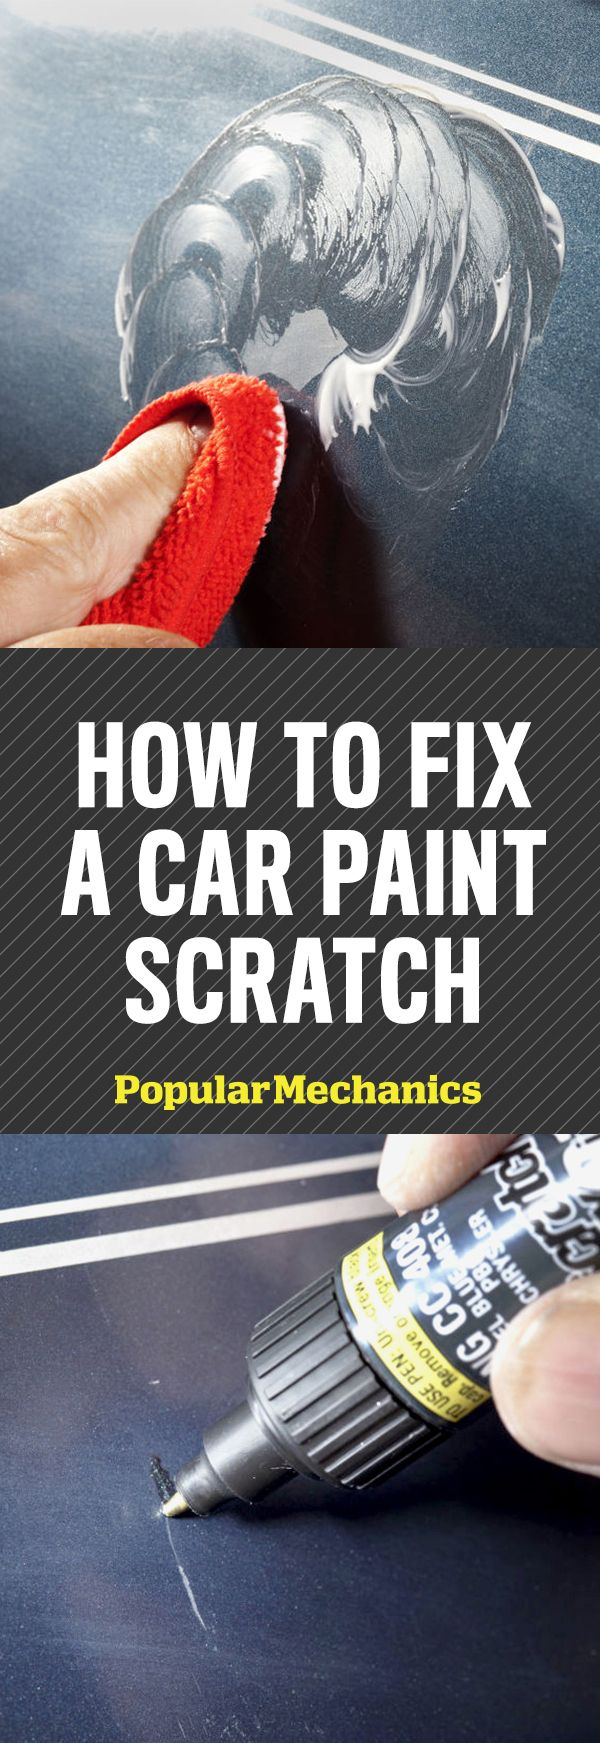 Scratches, chips and other imperfections are just about unavoidable, but a careful repair job can be almost totally invisible. Here's how to fix a paint scratch on your car, step by step.